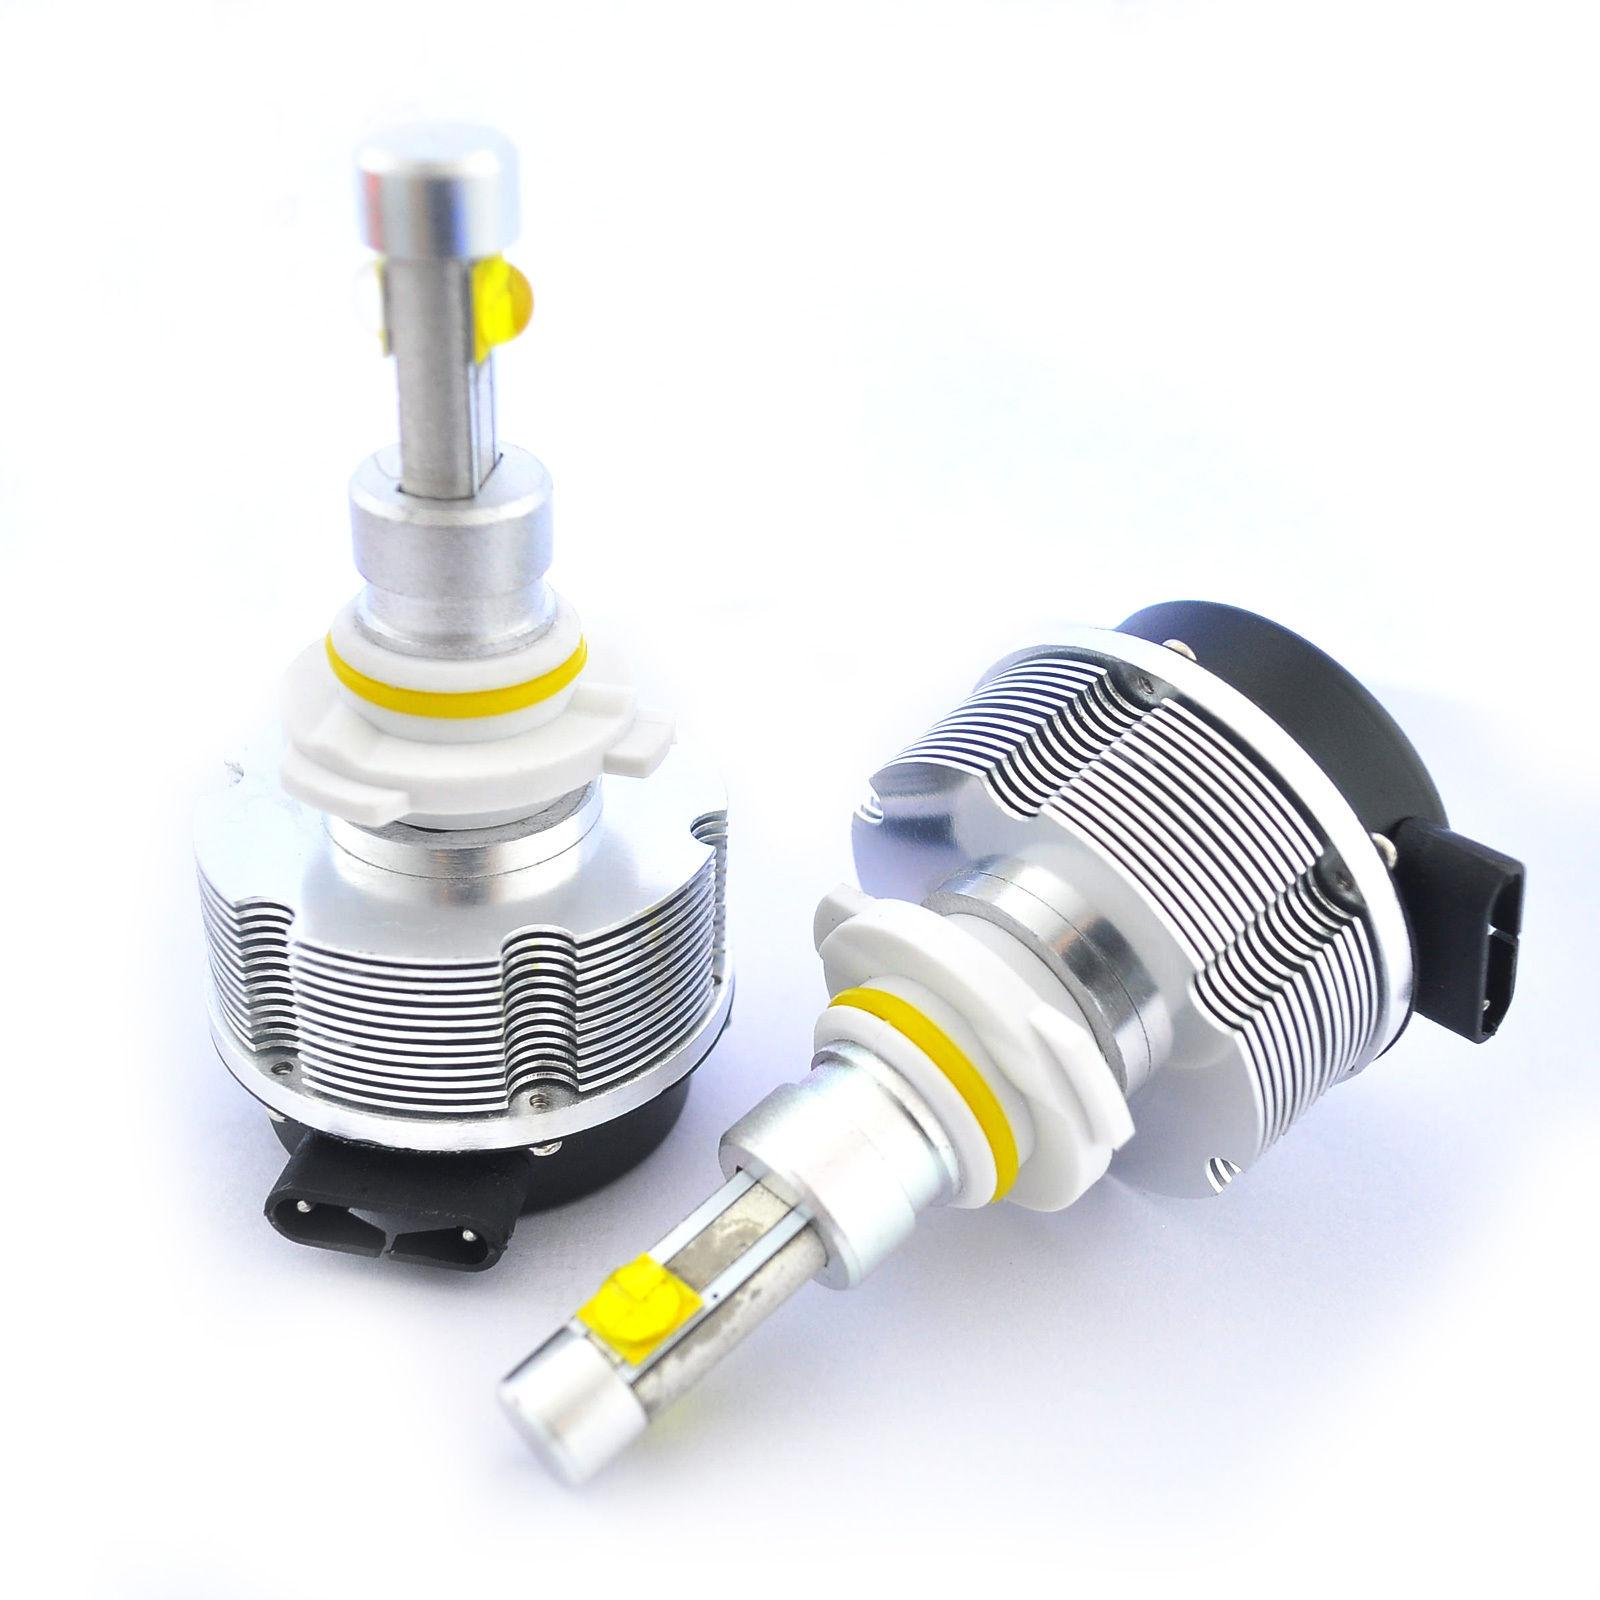 H4 60W CREE / ETI LED Headlight Headlamp 3000lm 2nd Gen. 12/24V 6000K Xenon White 30W/Bulb H1 H3 H7 H8 H9 H11 9005 9006 H13 9004 9007